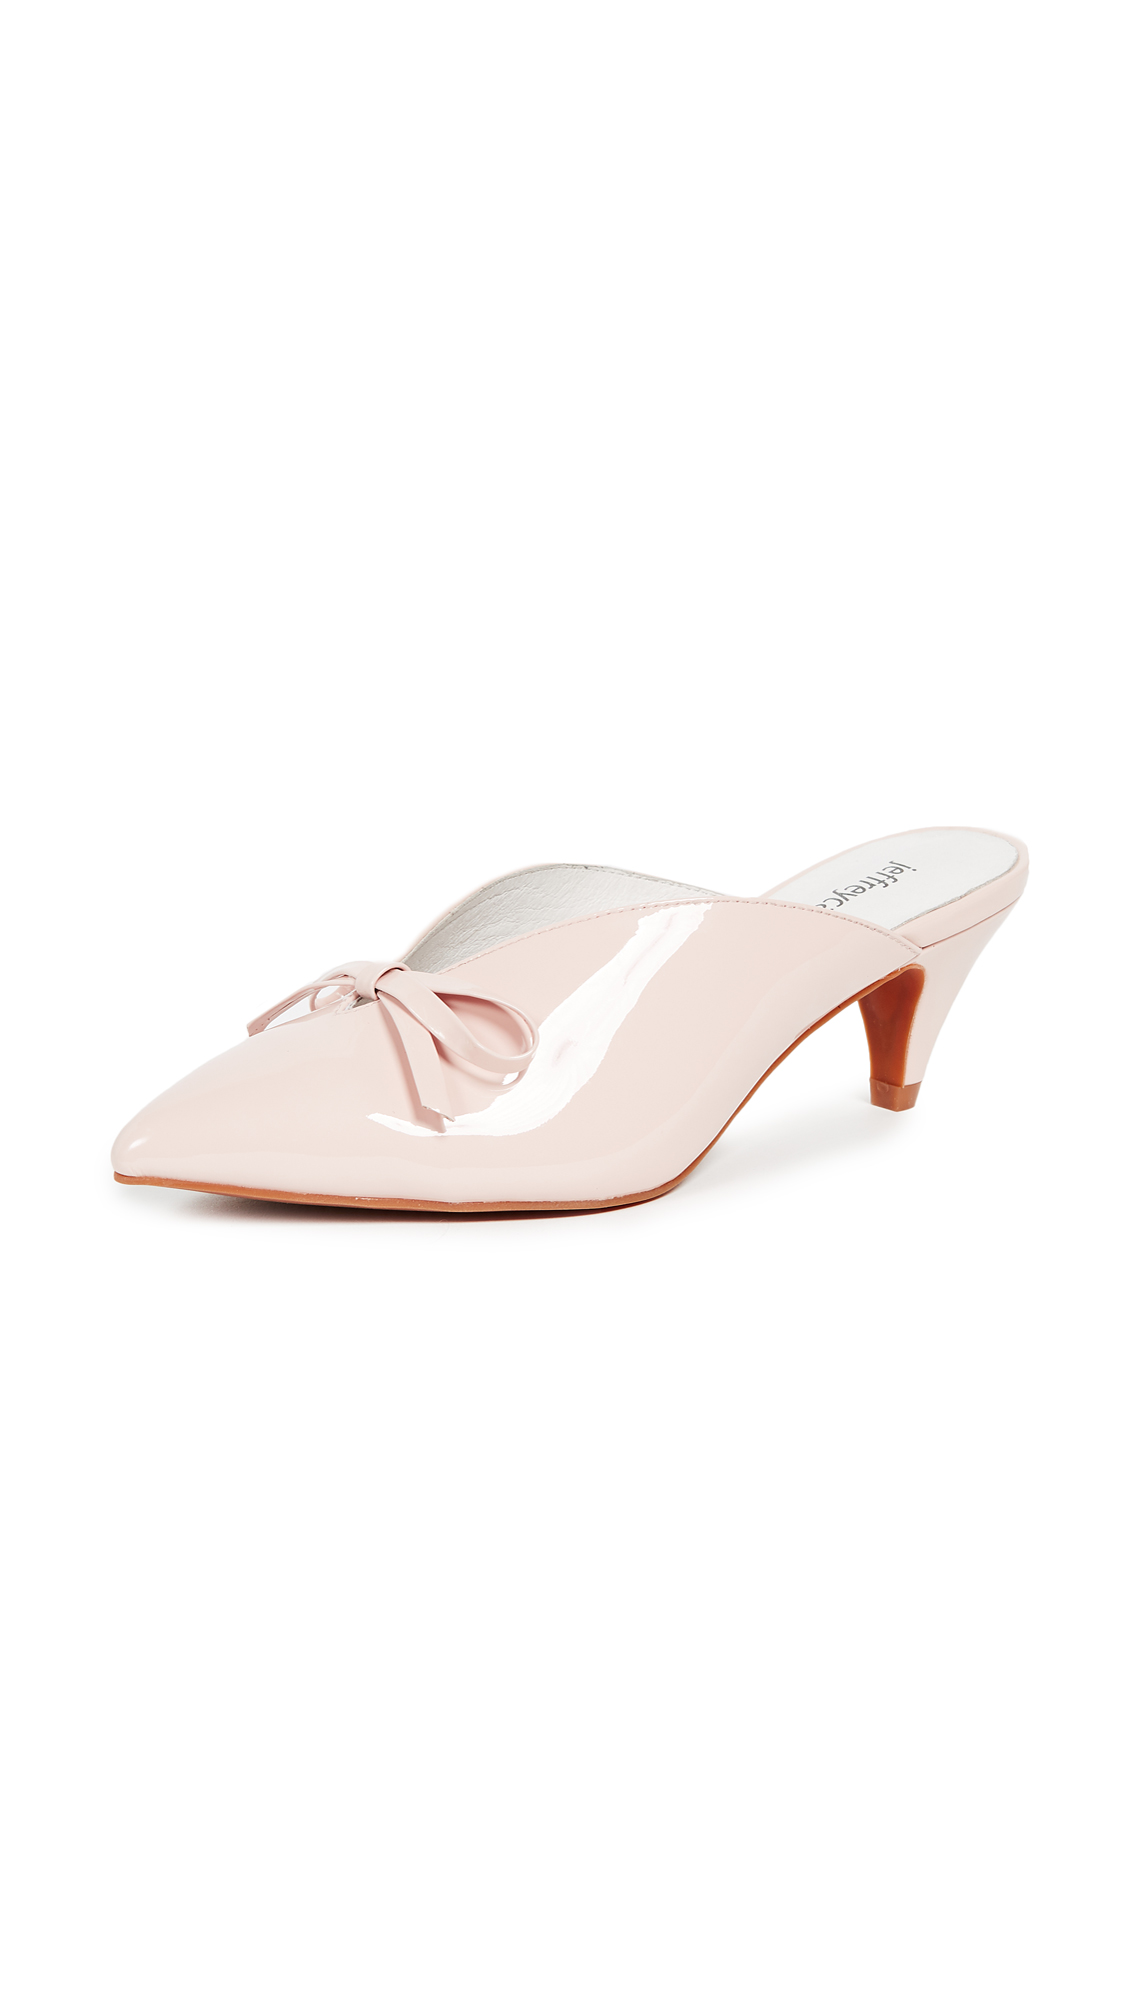 Jeffrey Campbell Romance Point Toe Mules - Light Pink